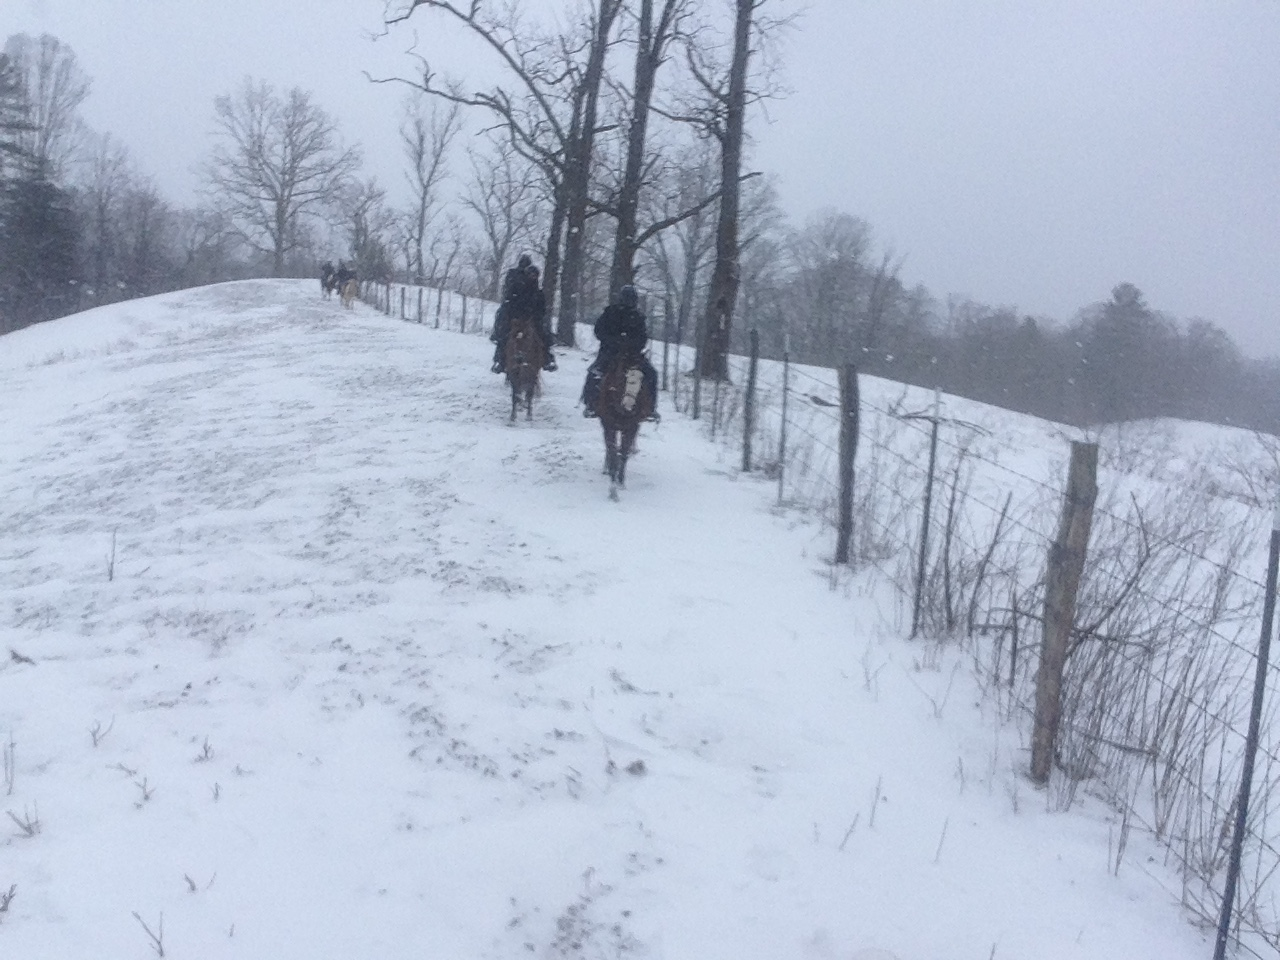 Horseback riding in the snow.